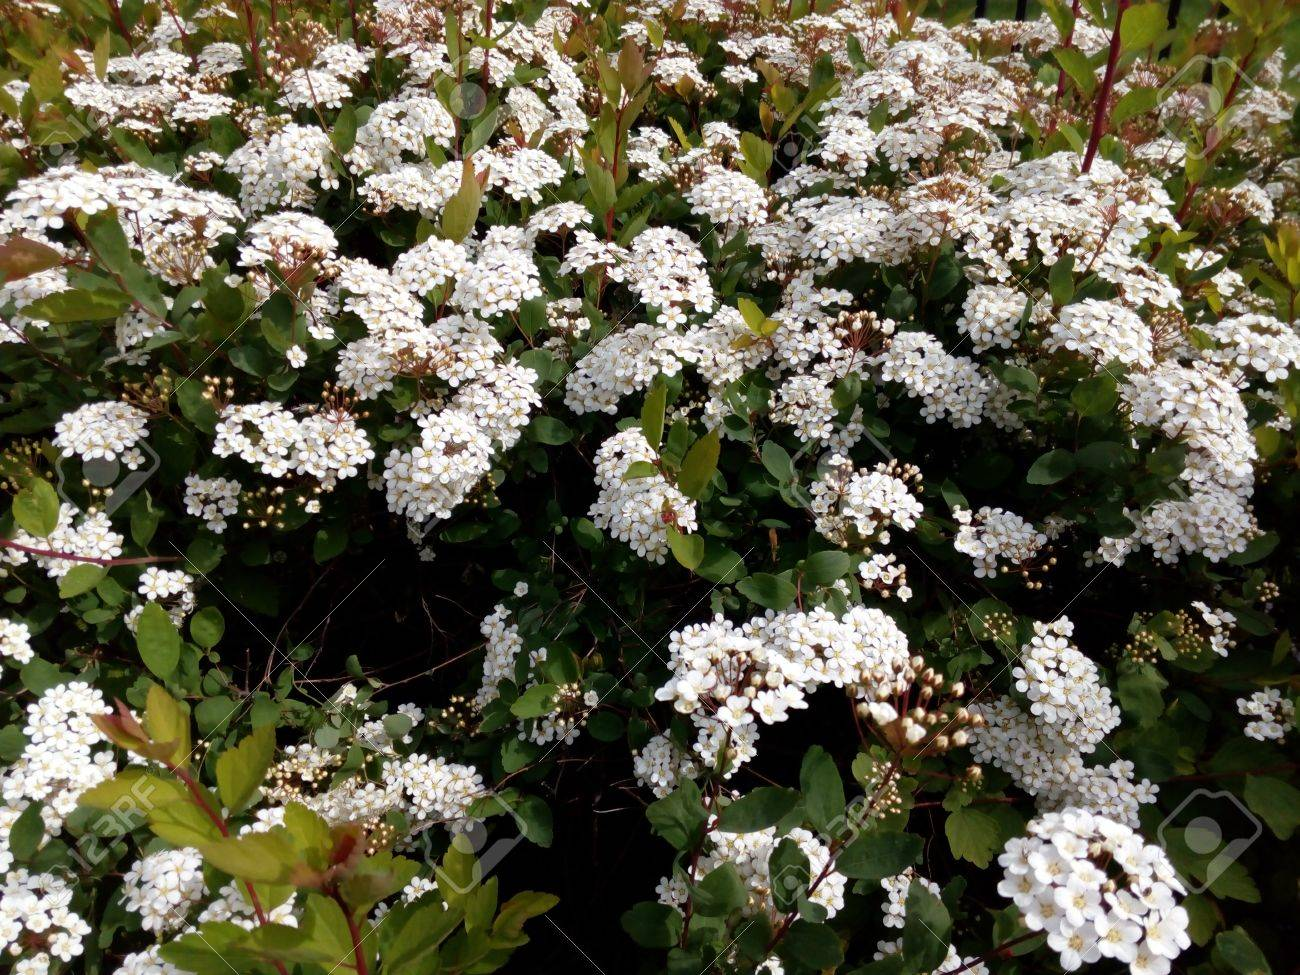 Spring green bush studded with small white flowers stock photo spring green bush studded with small white flowers stock photo 68984038 mightylinksfo